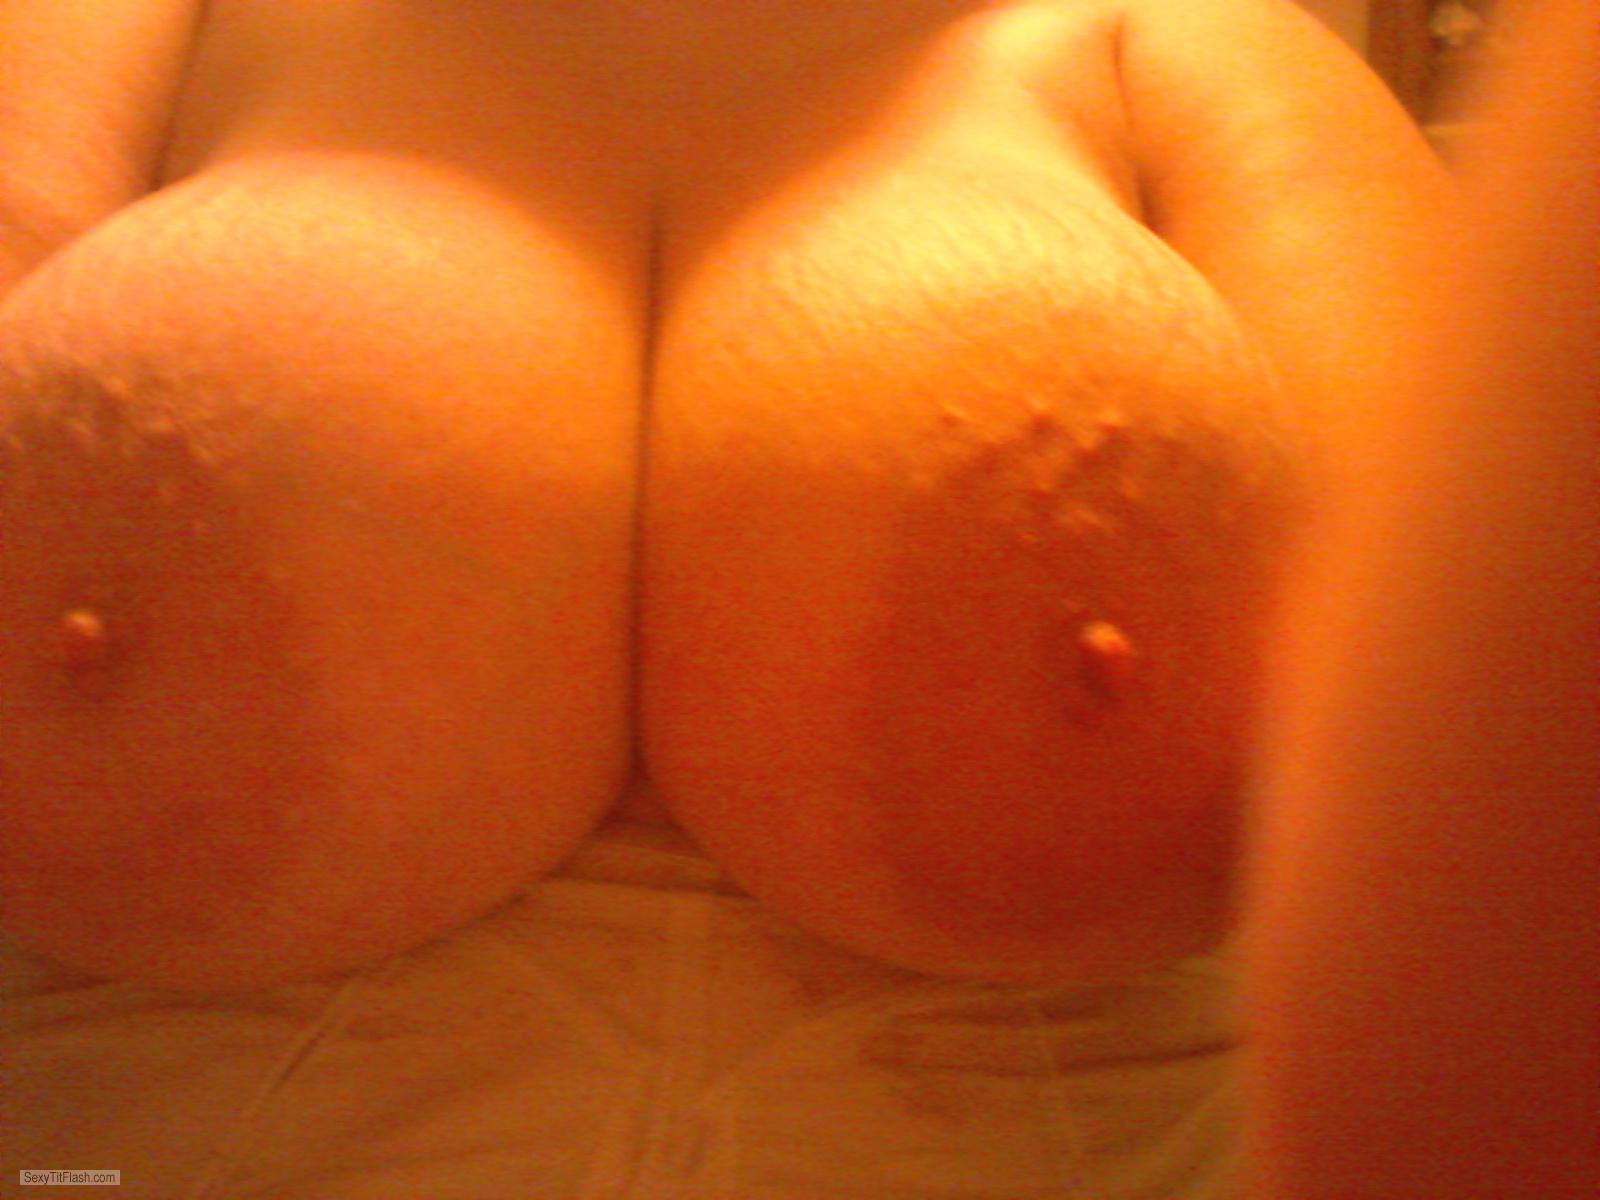 Tit Flash: Wife's Extremely Big Tits (Selfie) - Wife from United States